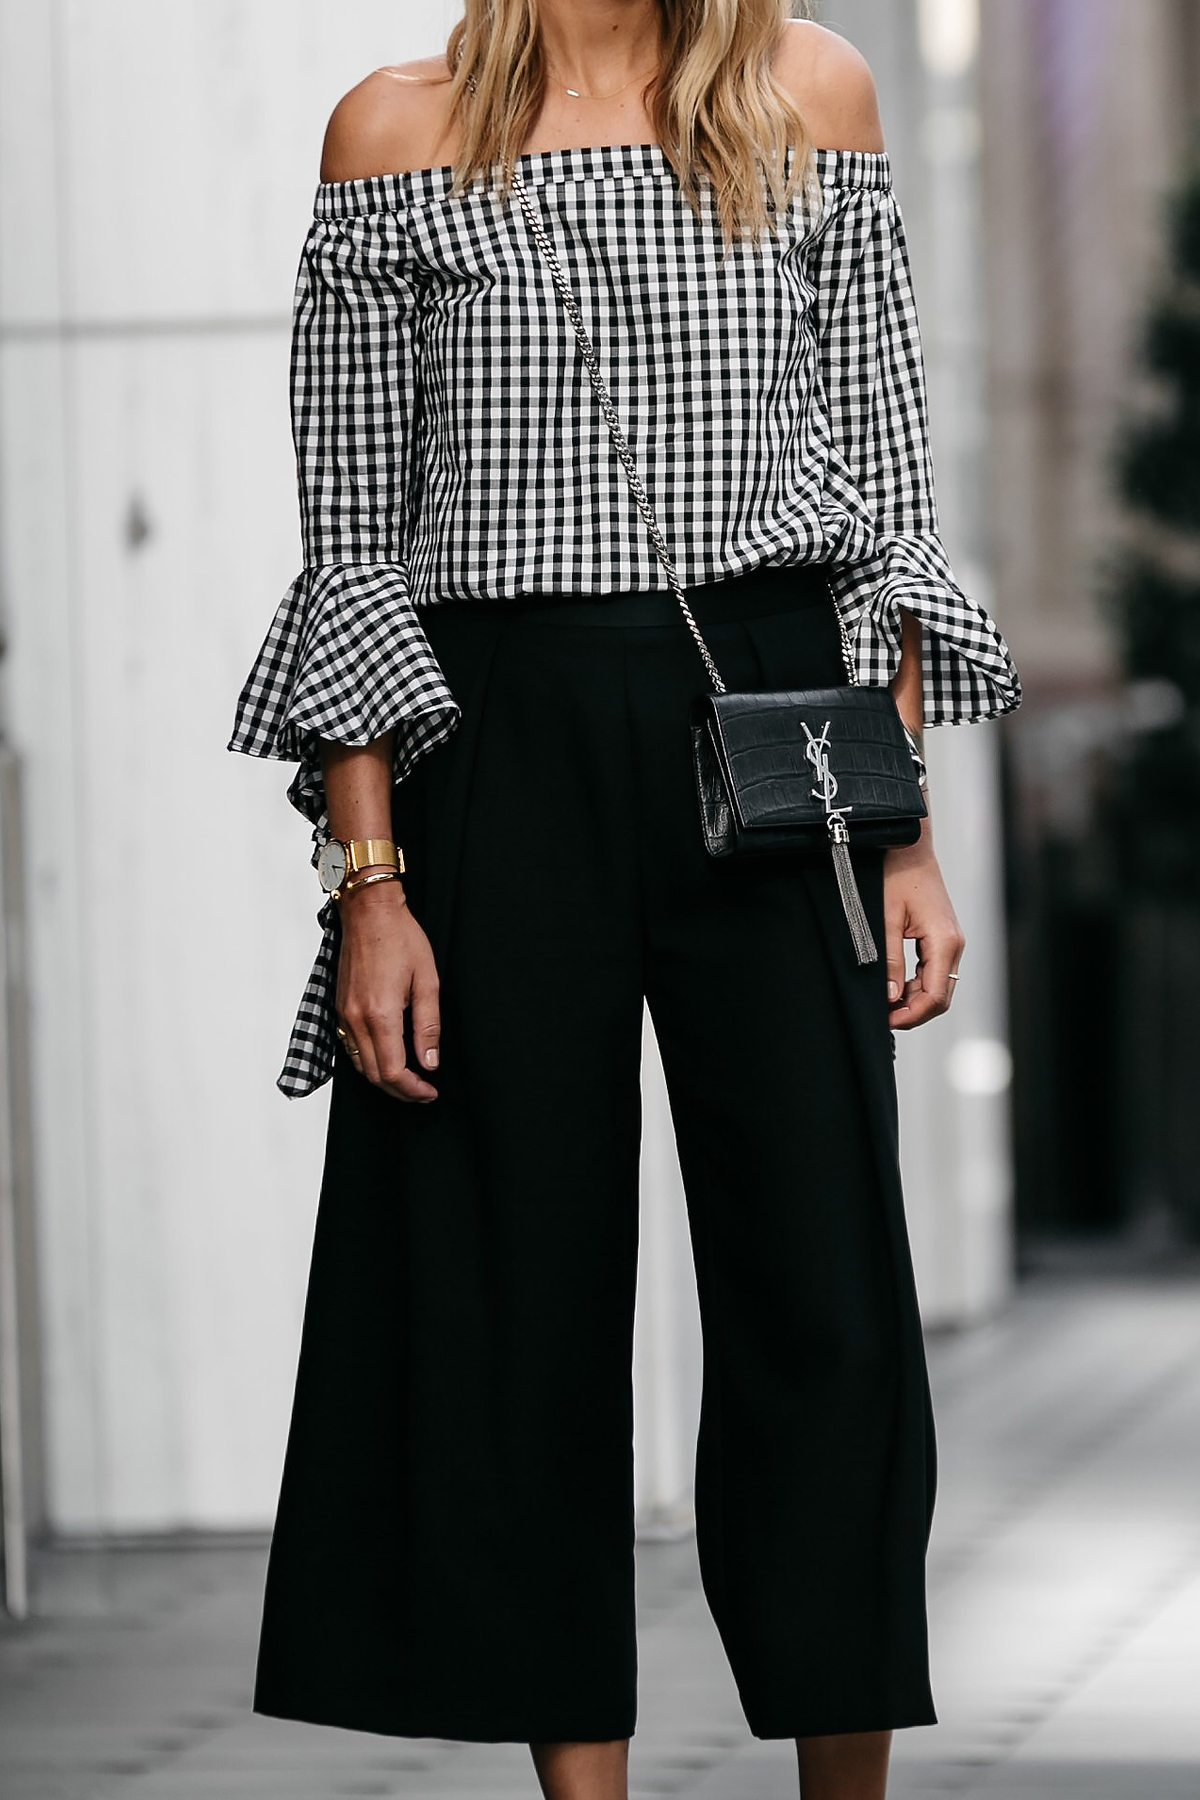 Blonde woman wearing nordstrom gingham off-the-shoulder top topshop black culottes outfit ysl crossbody street style dallas blogger fashion blogger